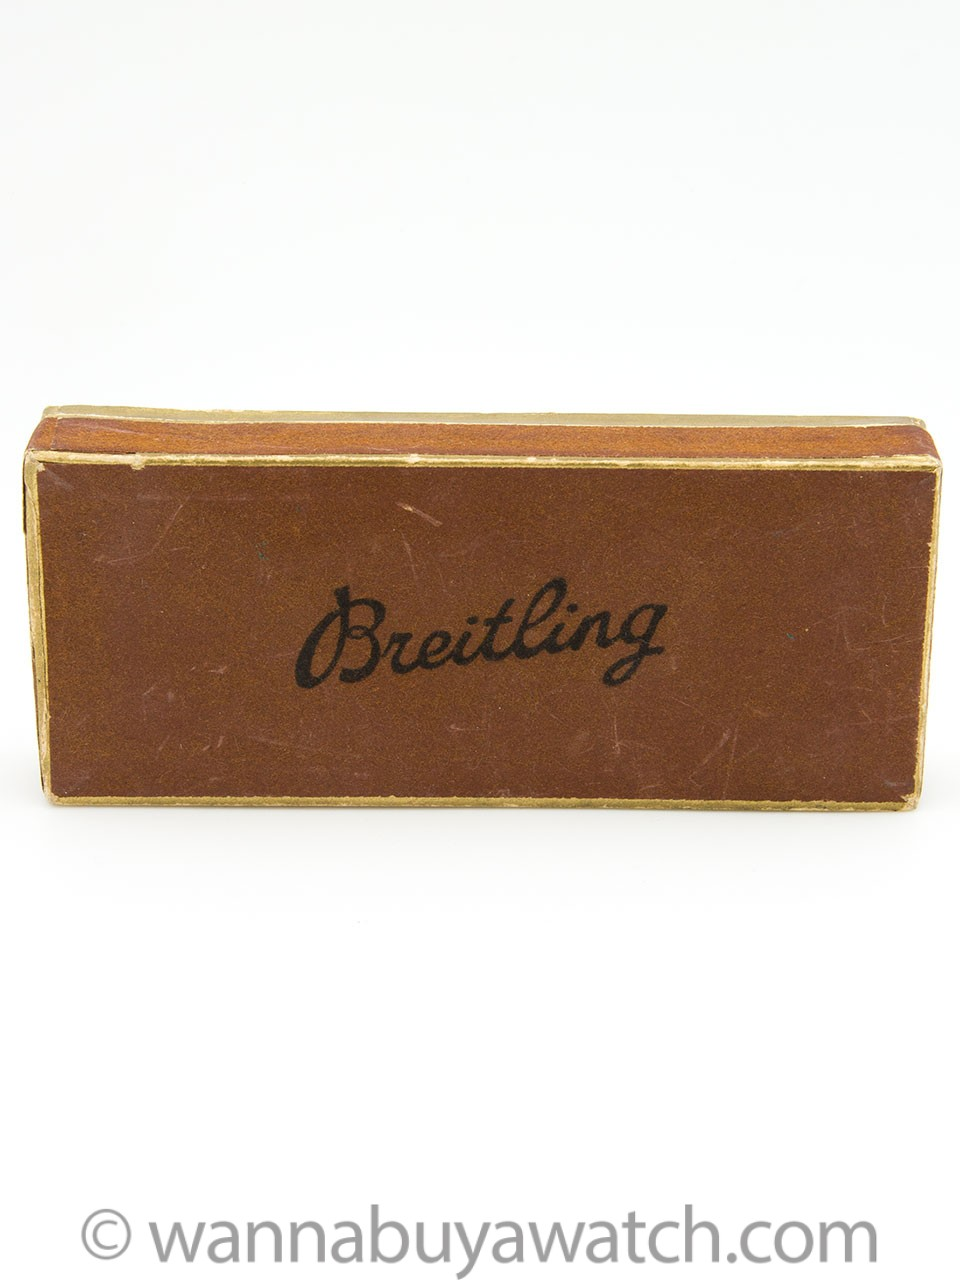 Breitling Chronograph ref 790 circa 1940's Original Box & Tags